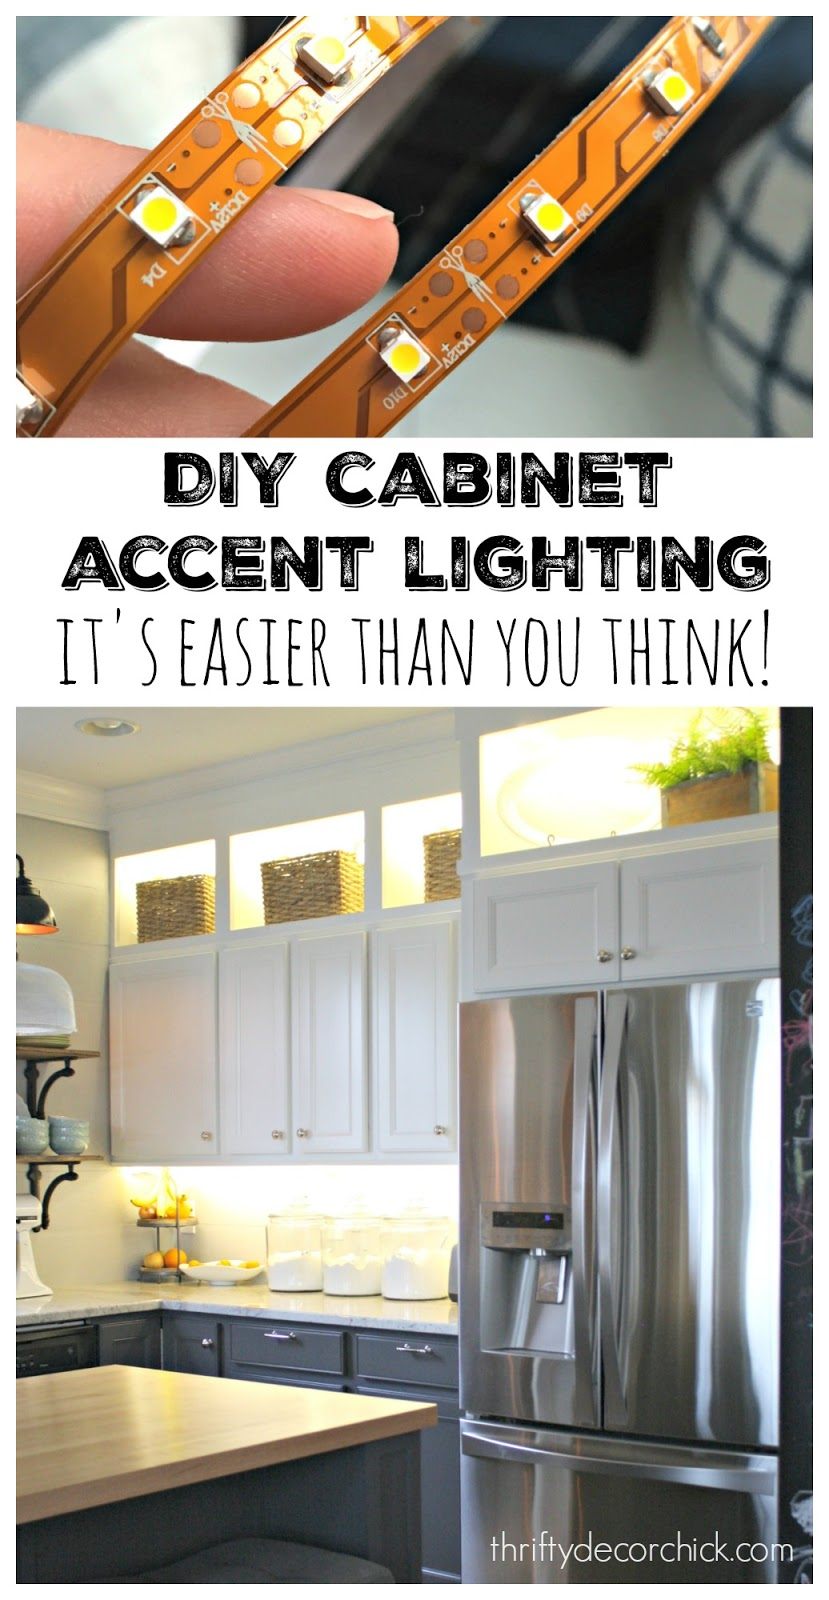 These Are A Really Affordable And Energy Efficient Way To Add Accent  Lighting To Your Kitchen! Hereu0027s An Image To Pin For Later If You Are  Interested: